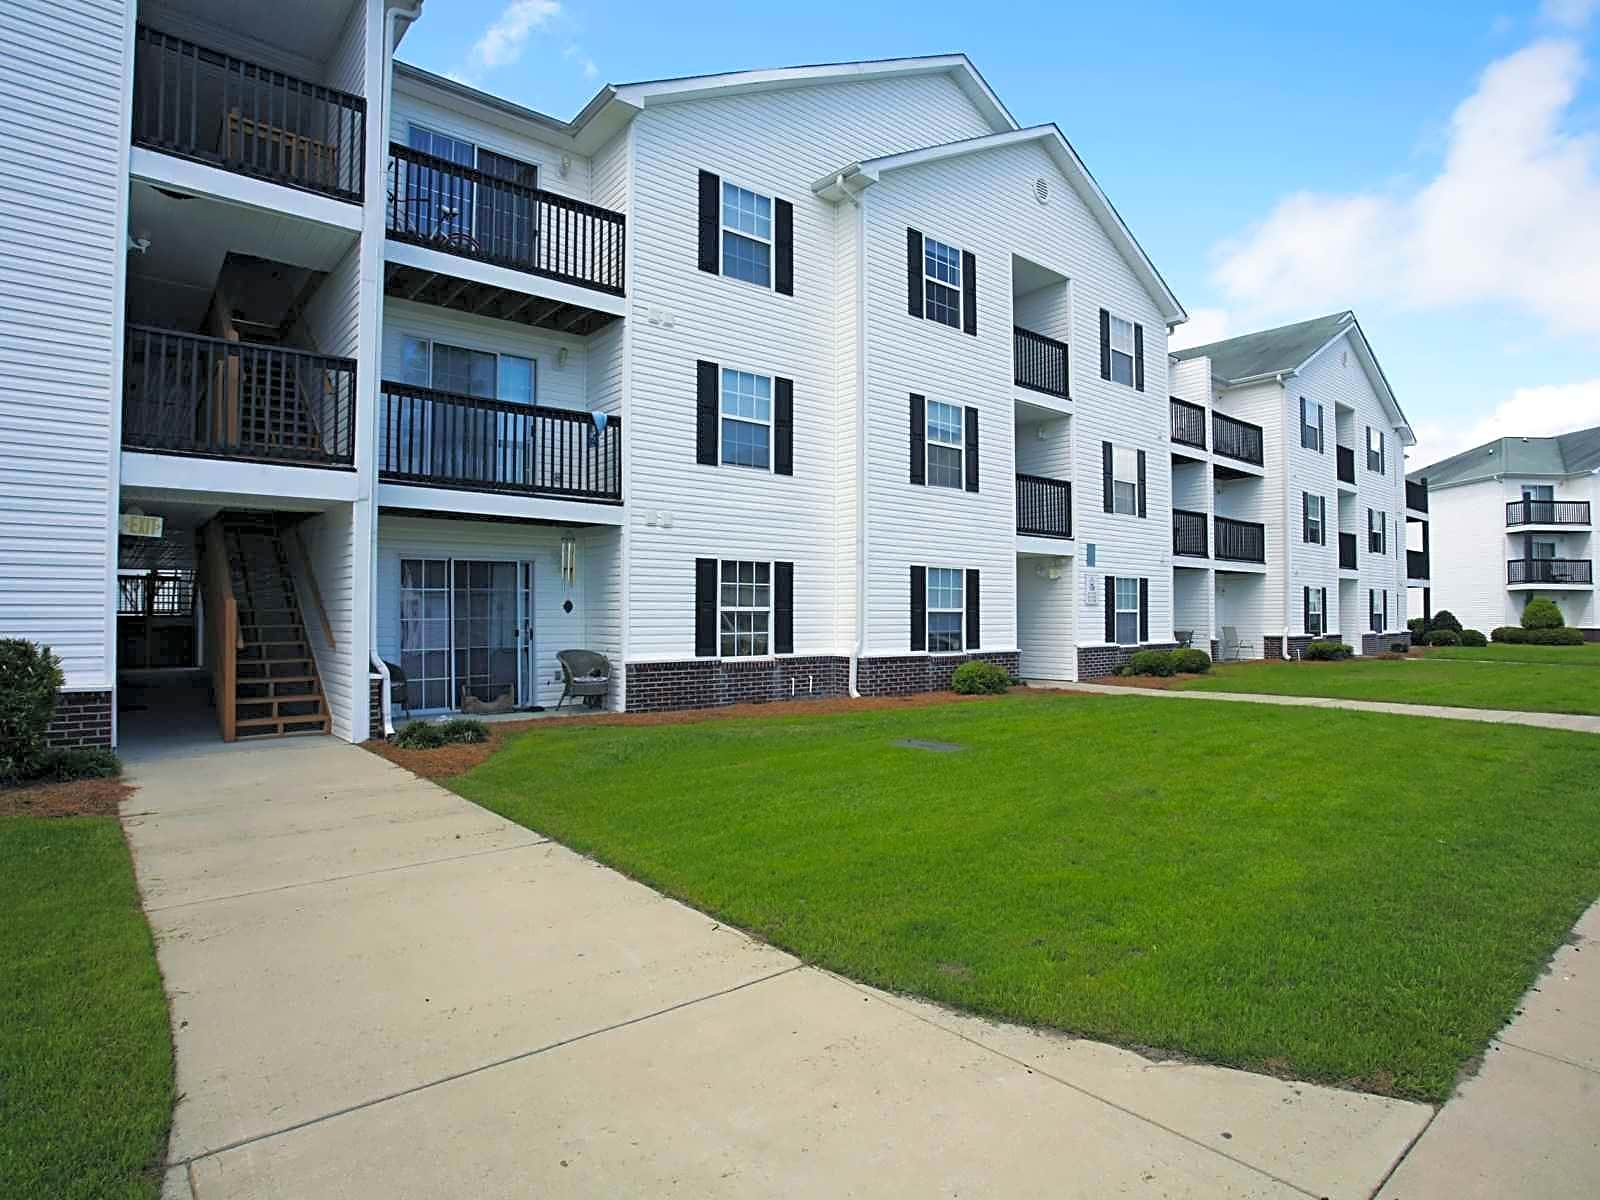 Photo: Myrtle Beach Apartment for Rent - $580.00 / month; Studio & 1 Ba